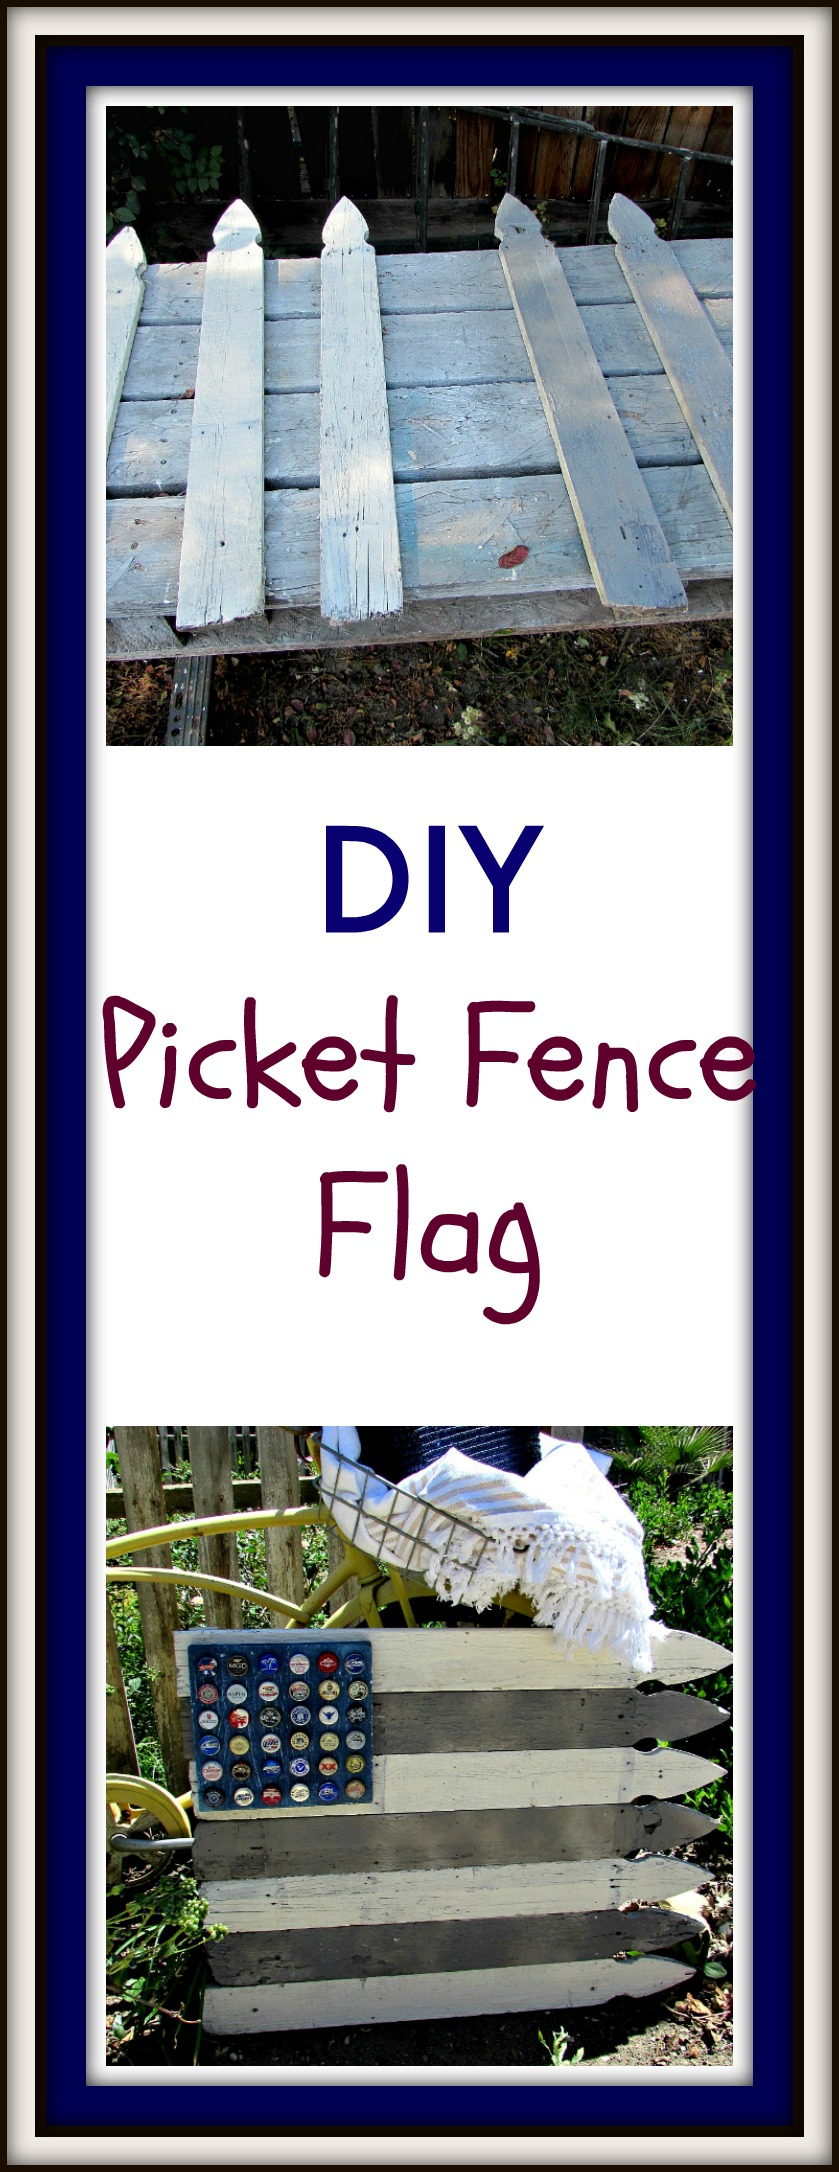 Picket Fence Flag Title